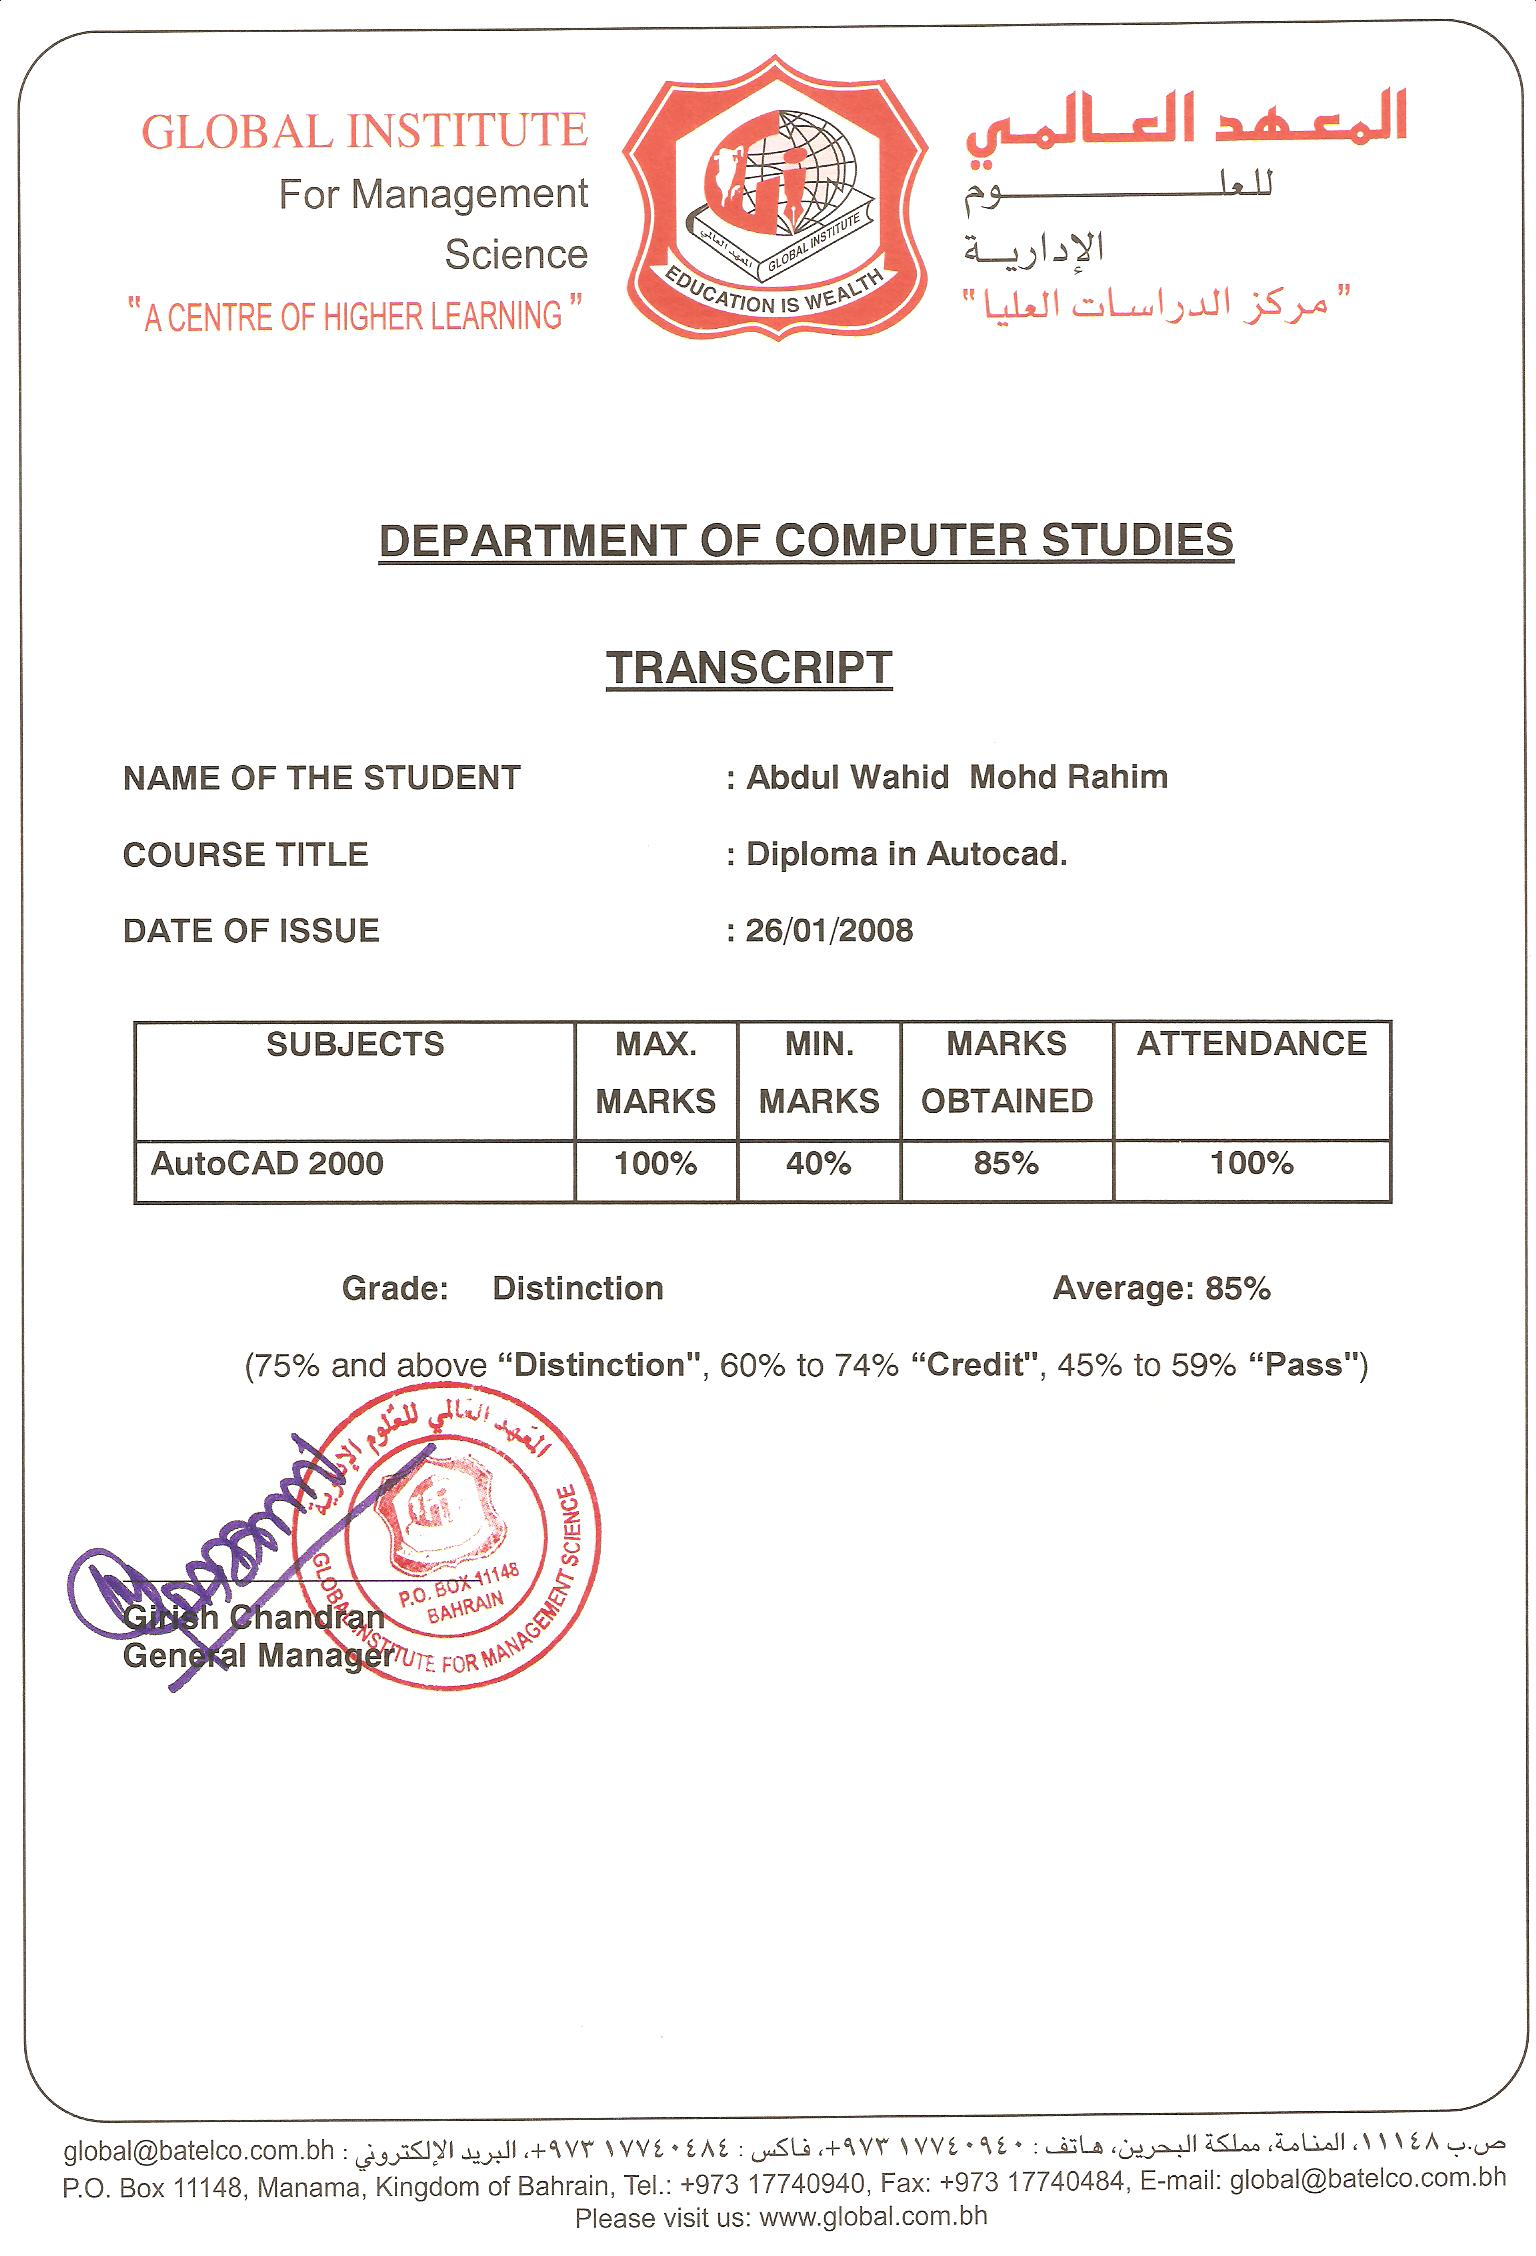 Wharton Mba Essays  Argument Persuasive Essay Examples also Population Problems Essay Computer Engineering Essay Boon Or Bane Johnny Tremain Essay